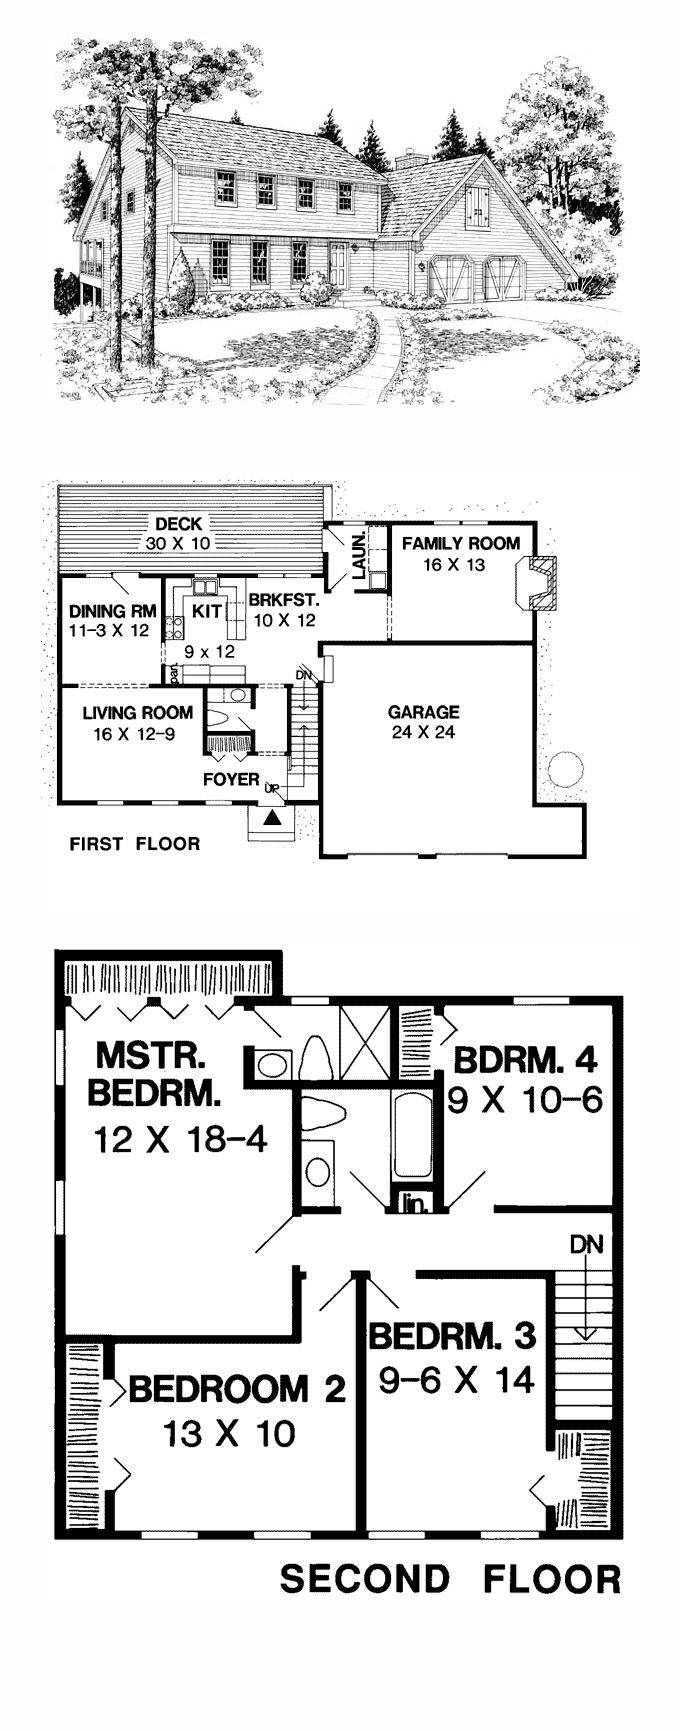 45 best images about saltbox house plans on pinterest for Saltbox house plan